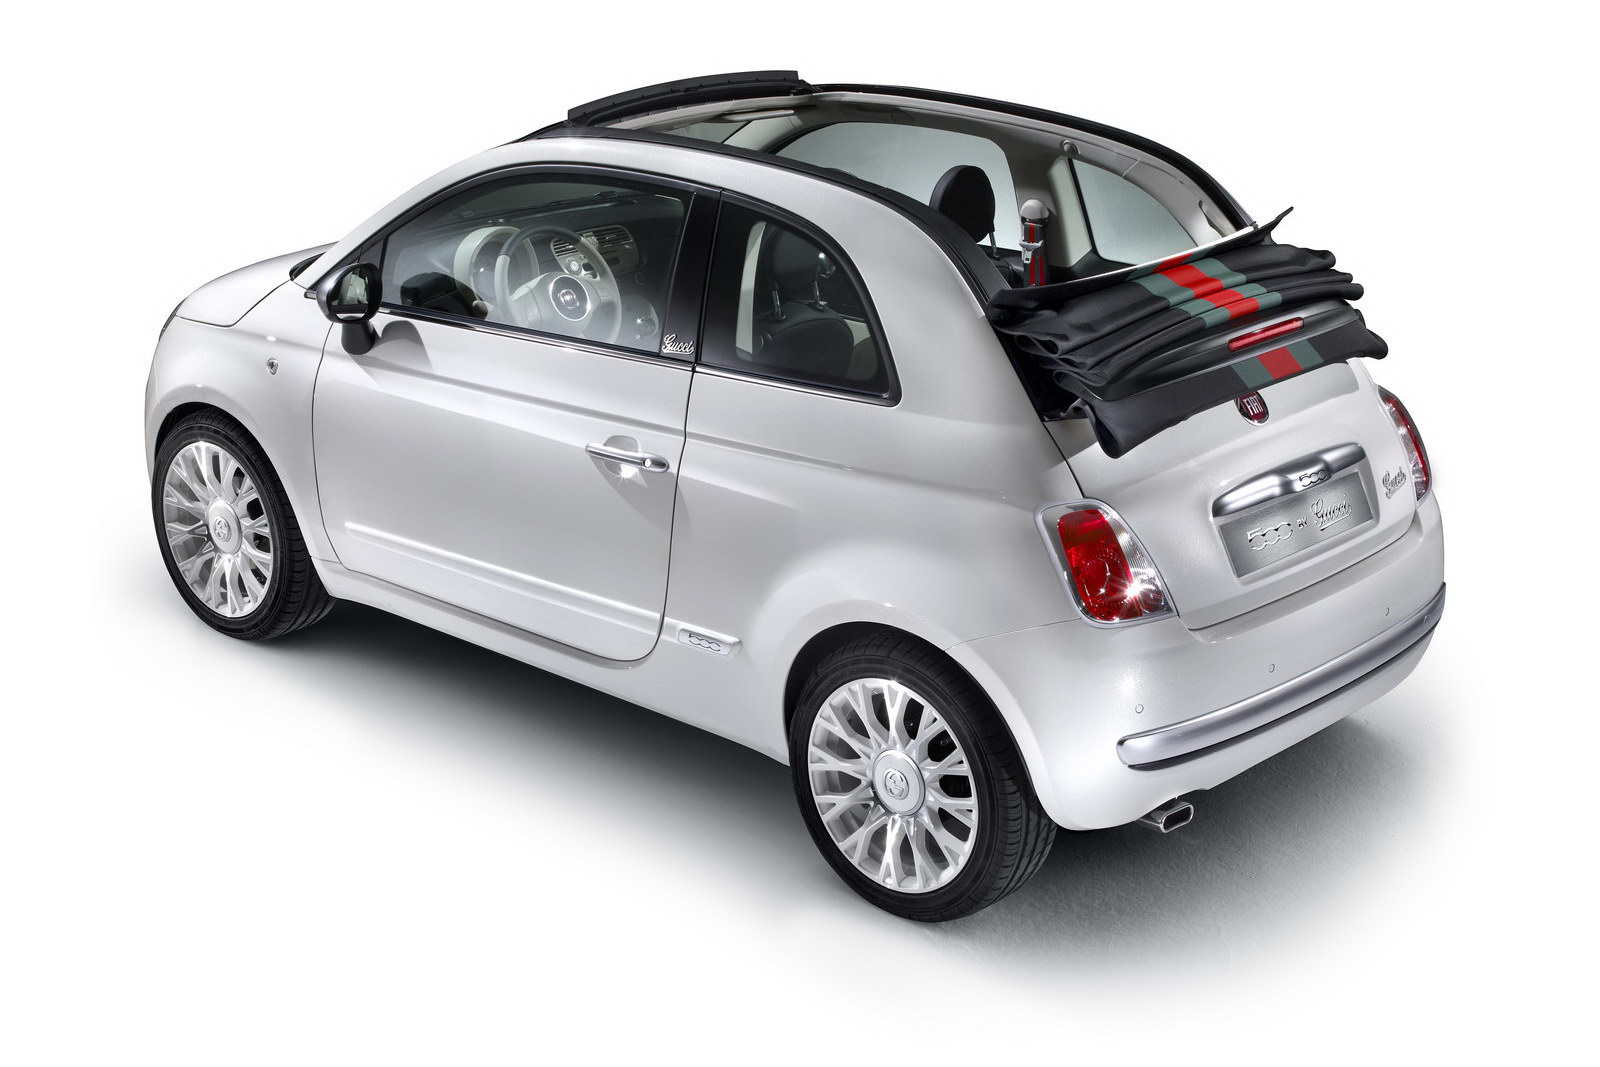 2012 Fiat 500 by Gucci 3 FIAT ANNOUNCES NEW 2012 TOPLESS EDITION FROM GUCCI